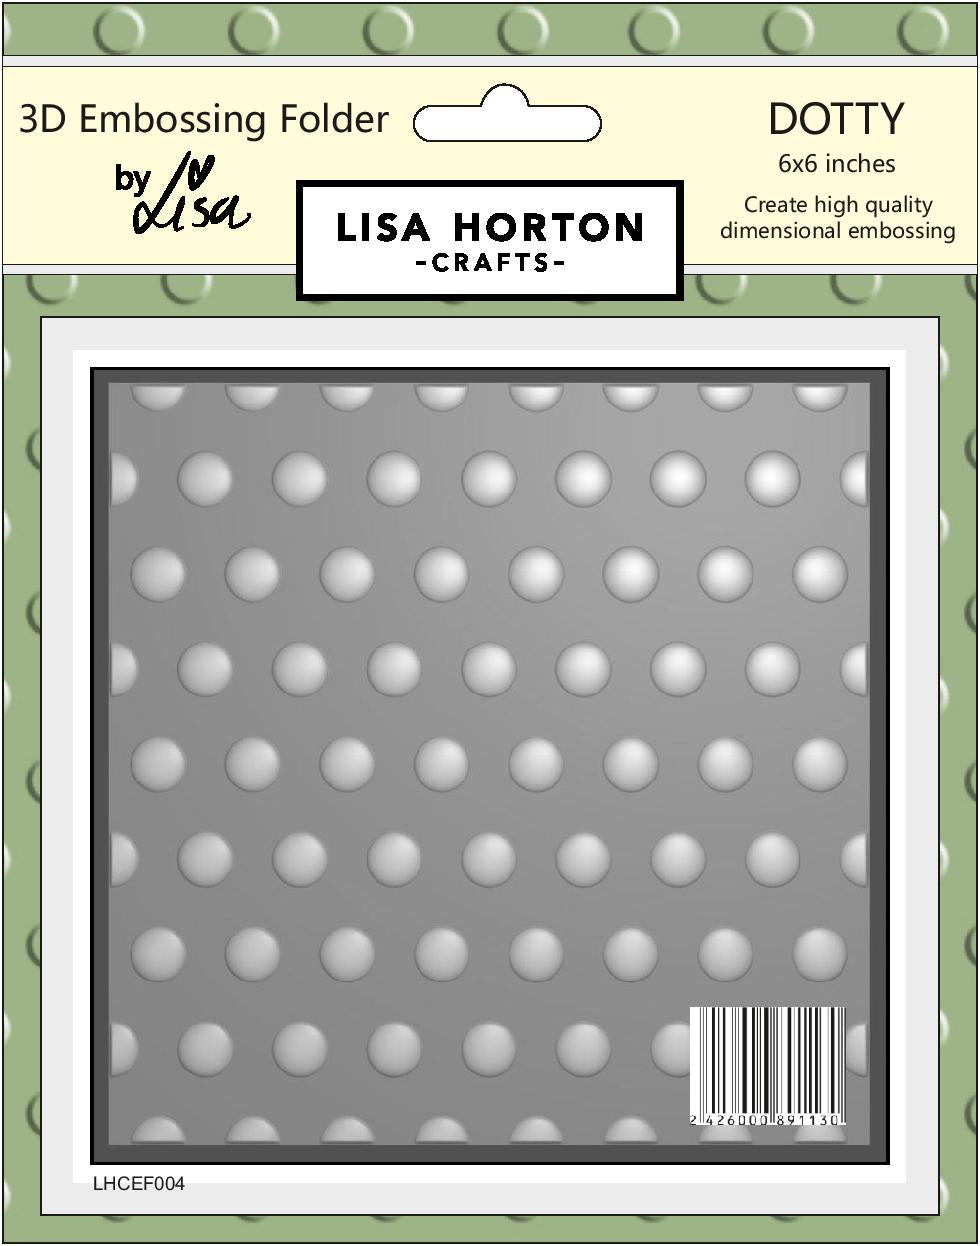 3D Embossing Folder - Dotty